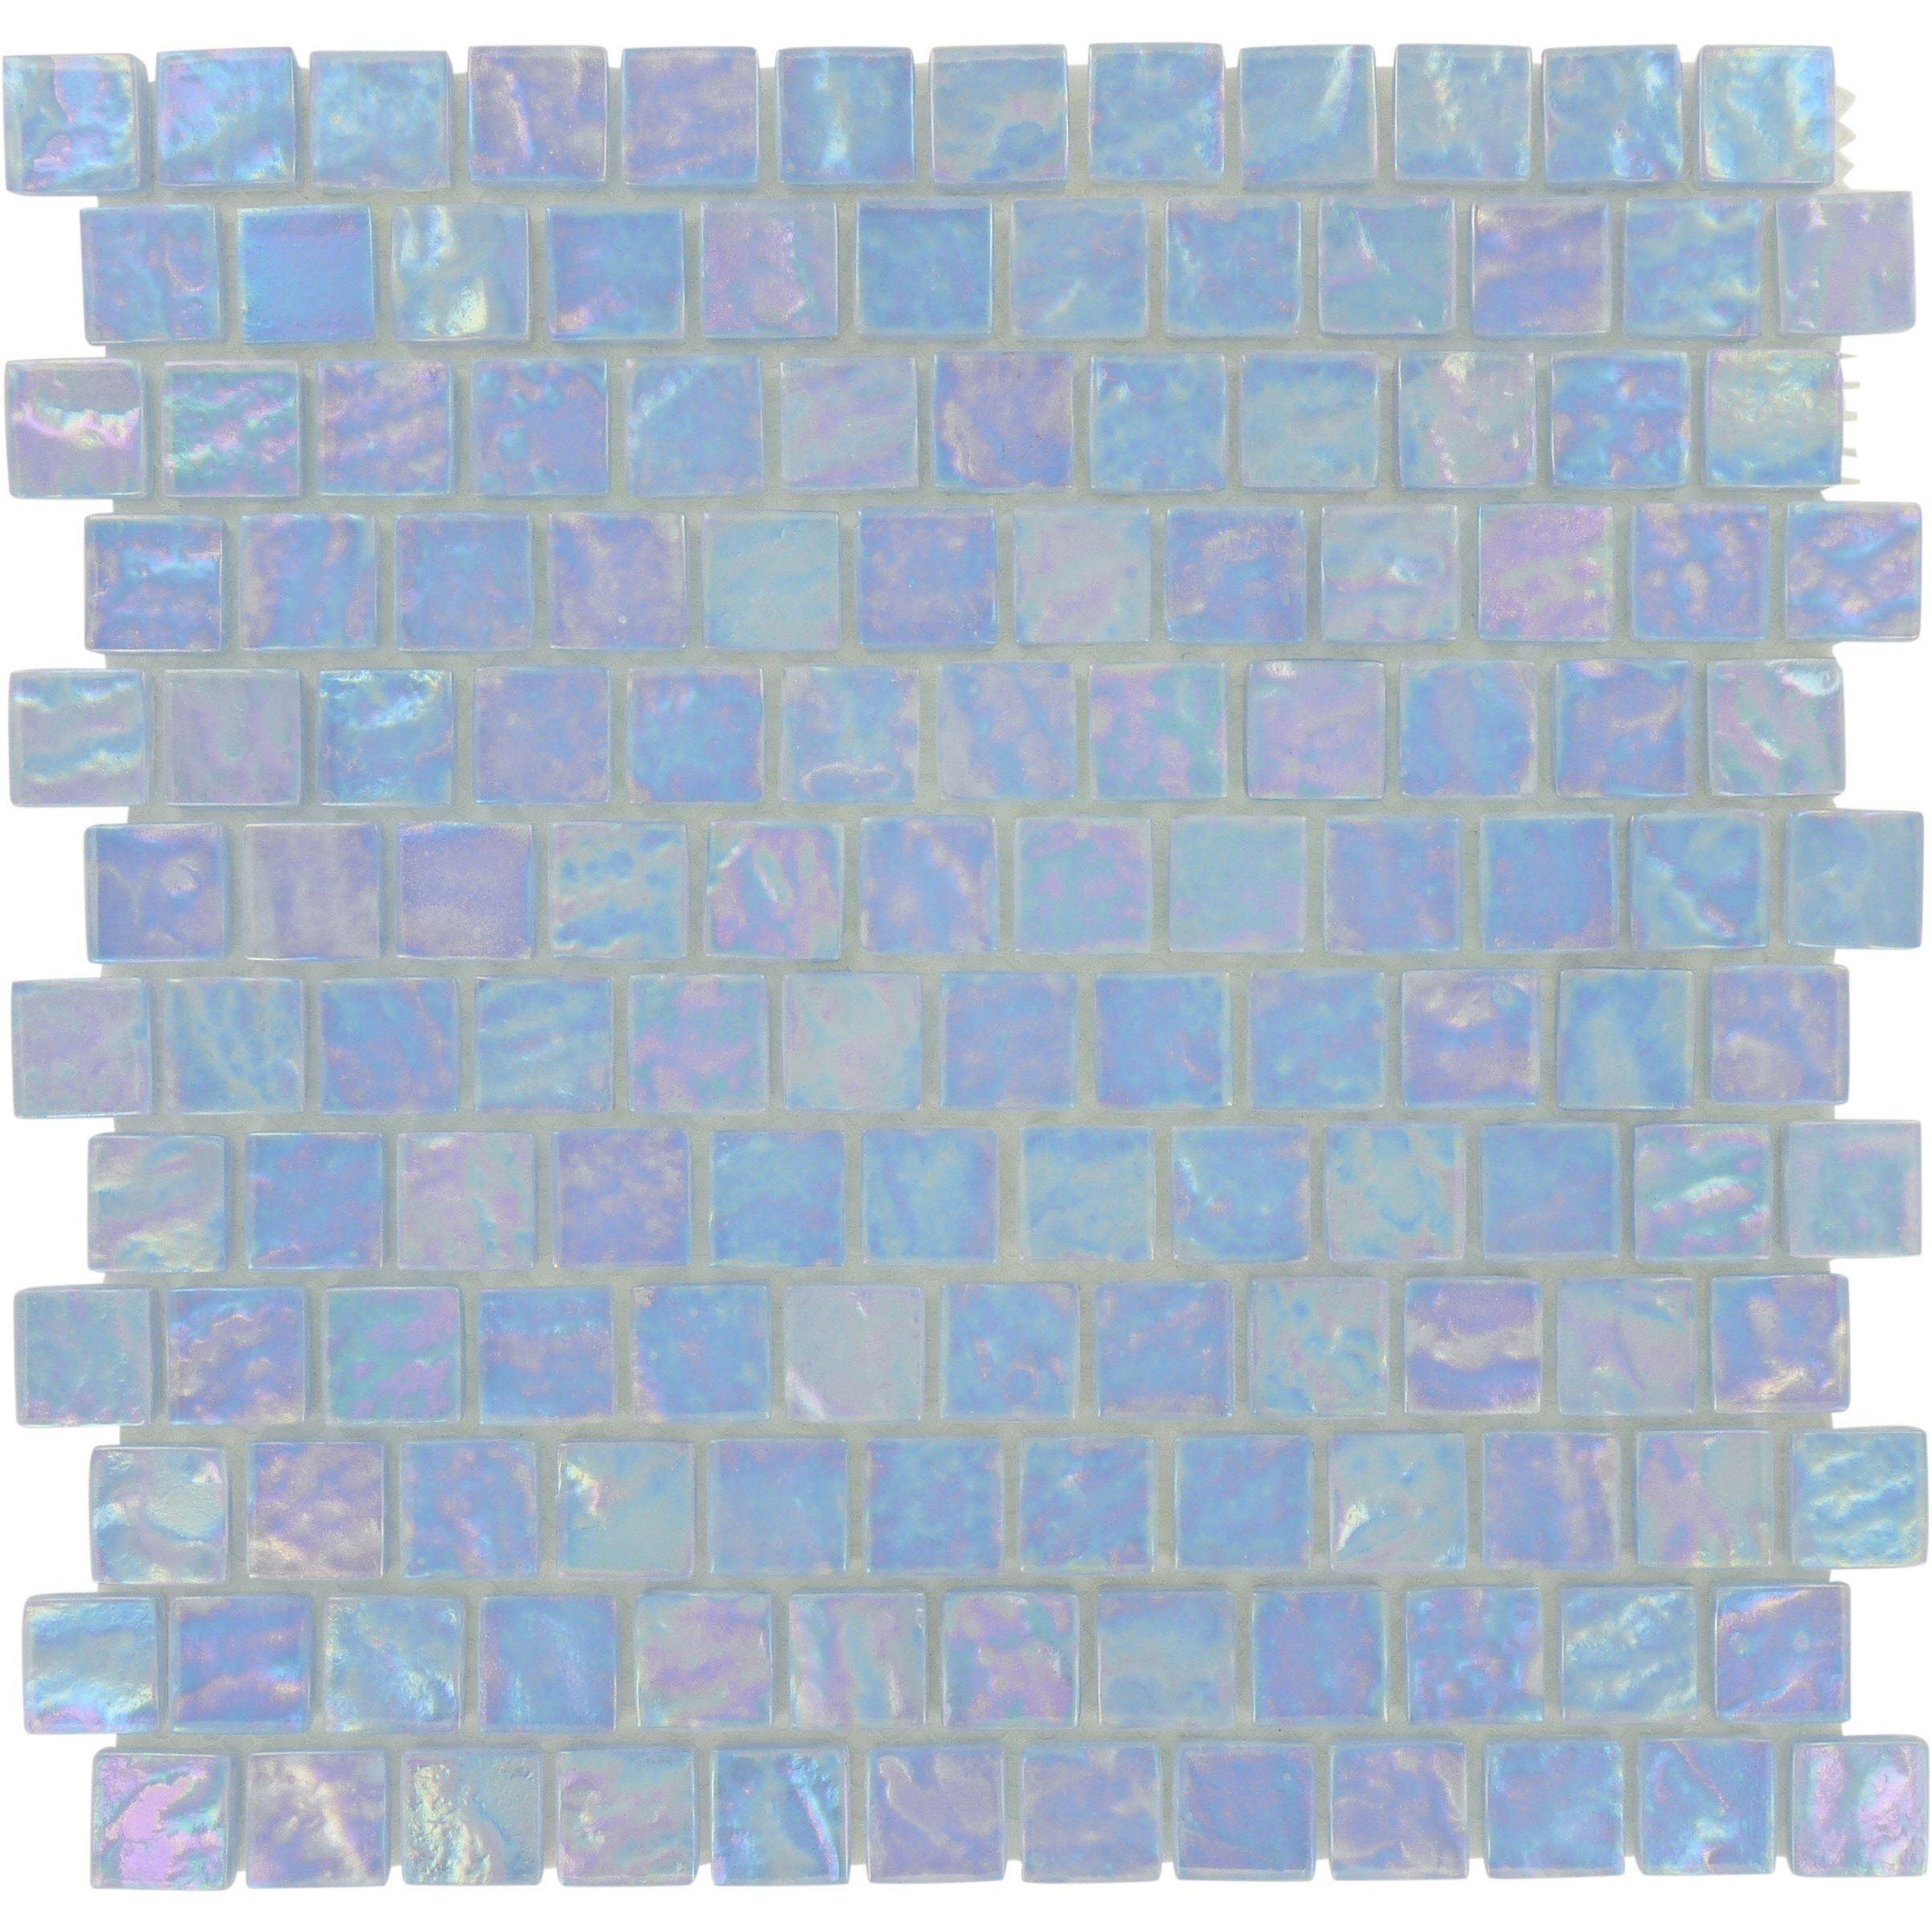 Sheet Size 11 3 4 X 11 3 4 Tile Size 7 8 X 7 8 Tiles Per Sheet 144 Tile Thickness 1 4 Grout Joints 1 Blue Glass Tile Iridescent Glass Tiles Glass Tile